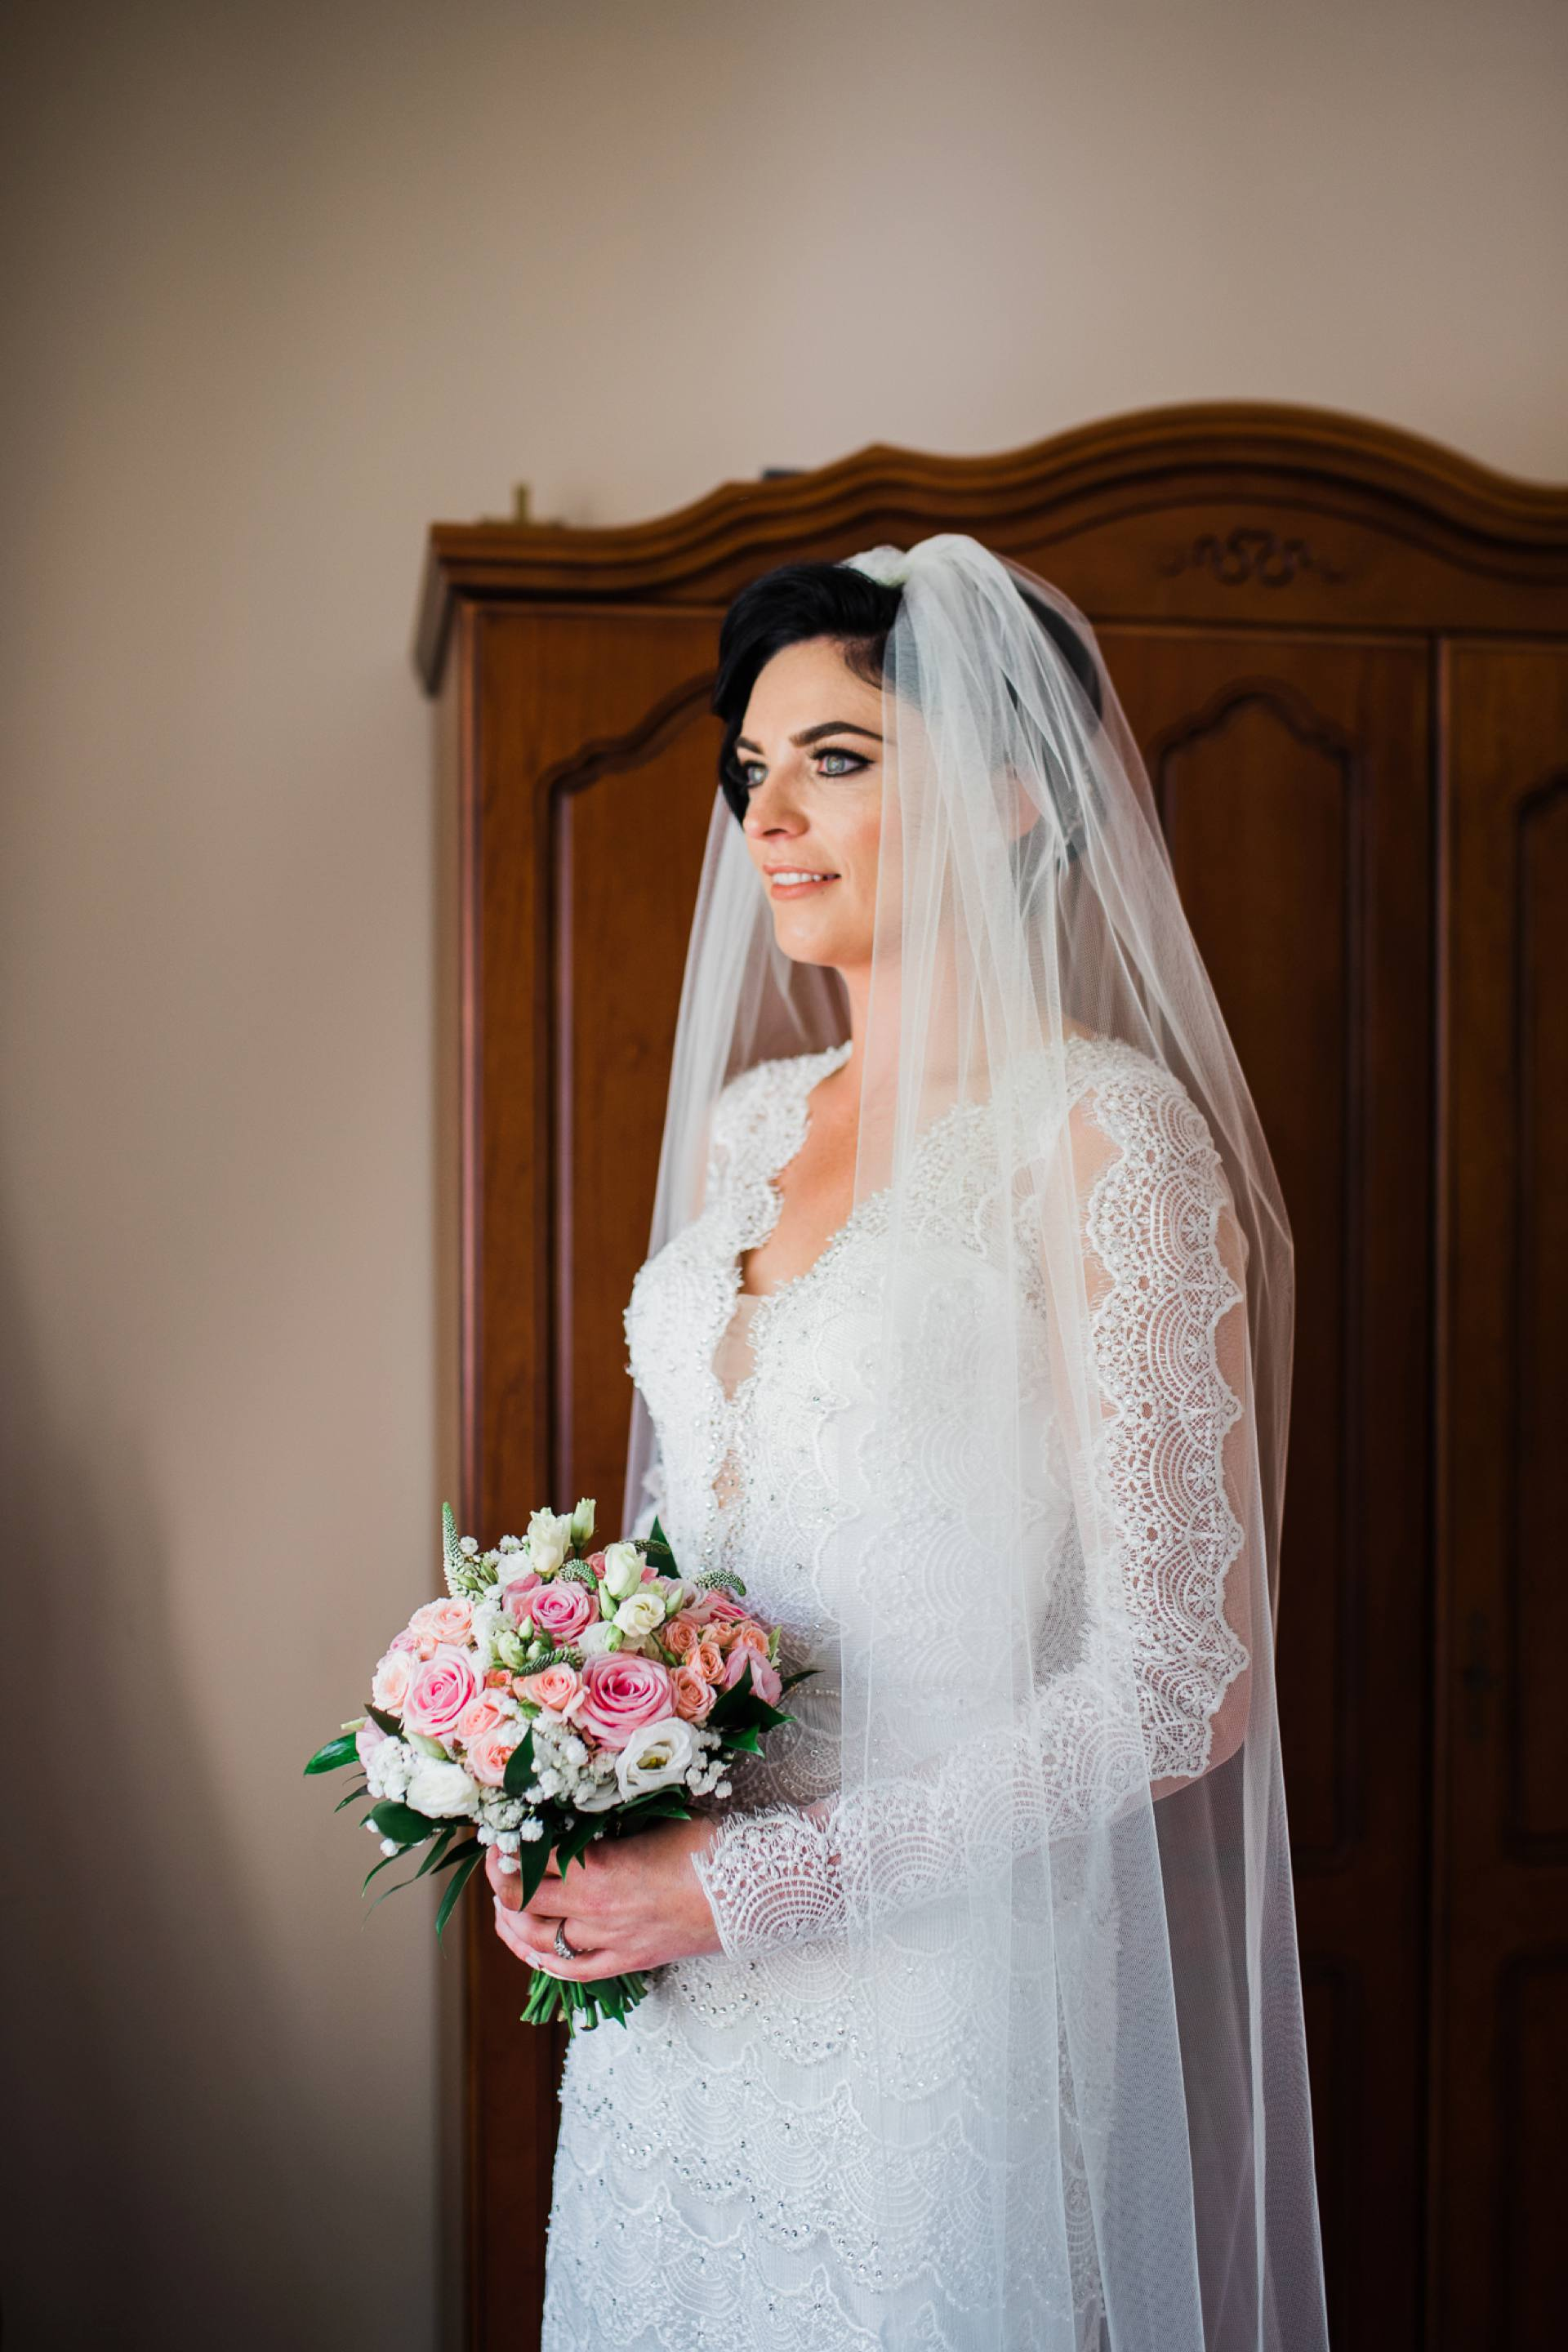 Bridal portrait with bride holding pink flowers